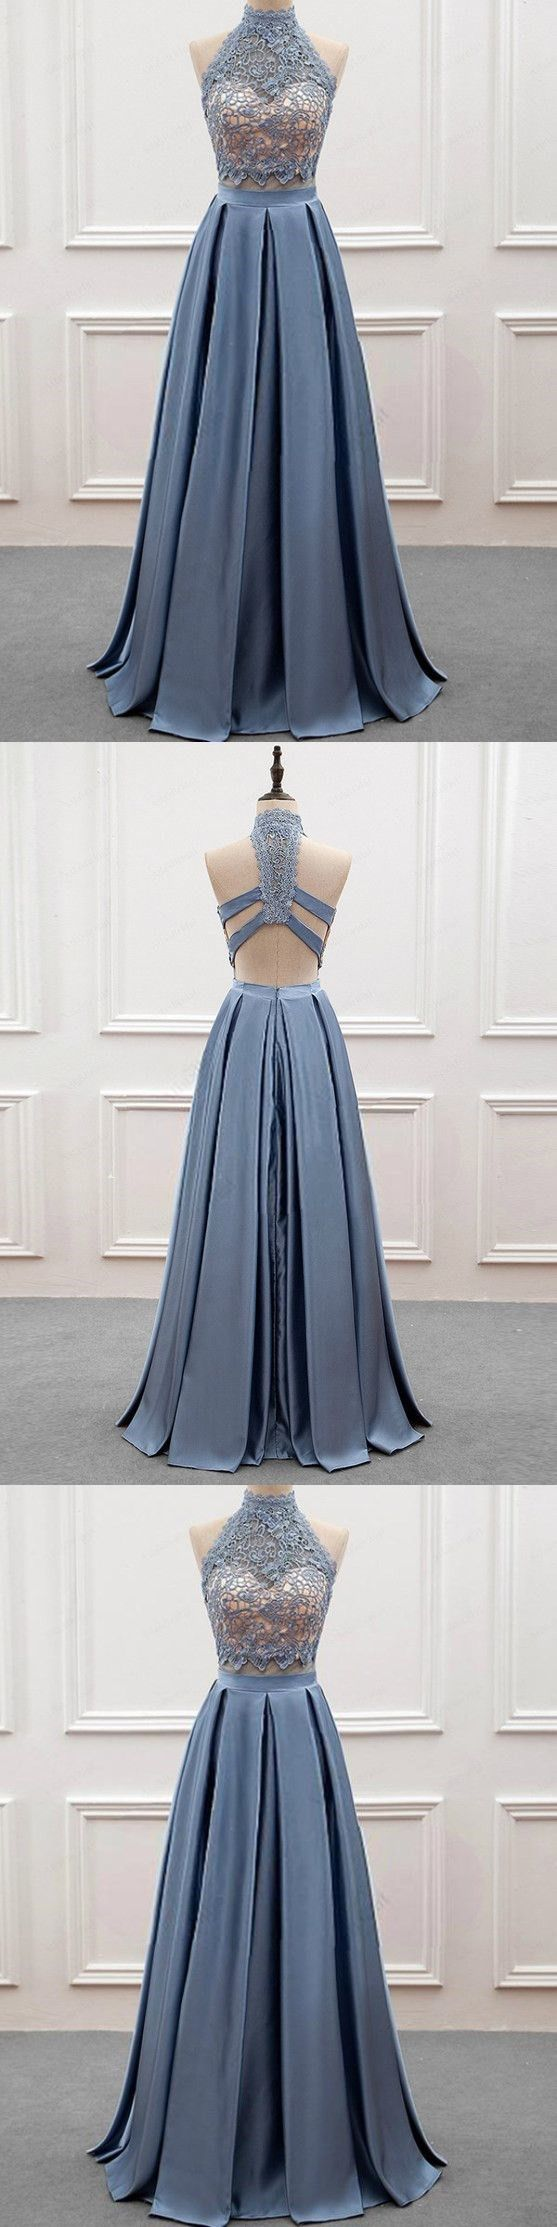 best dressed to the nines images on pinterest evening gowns